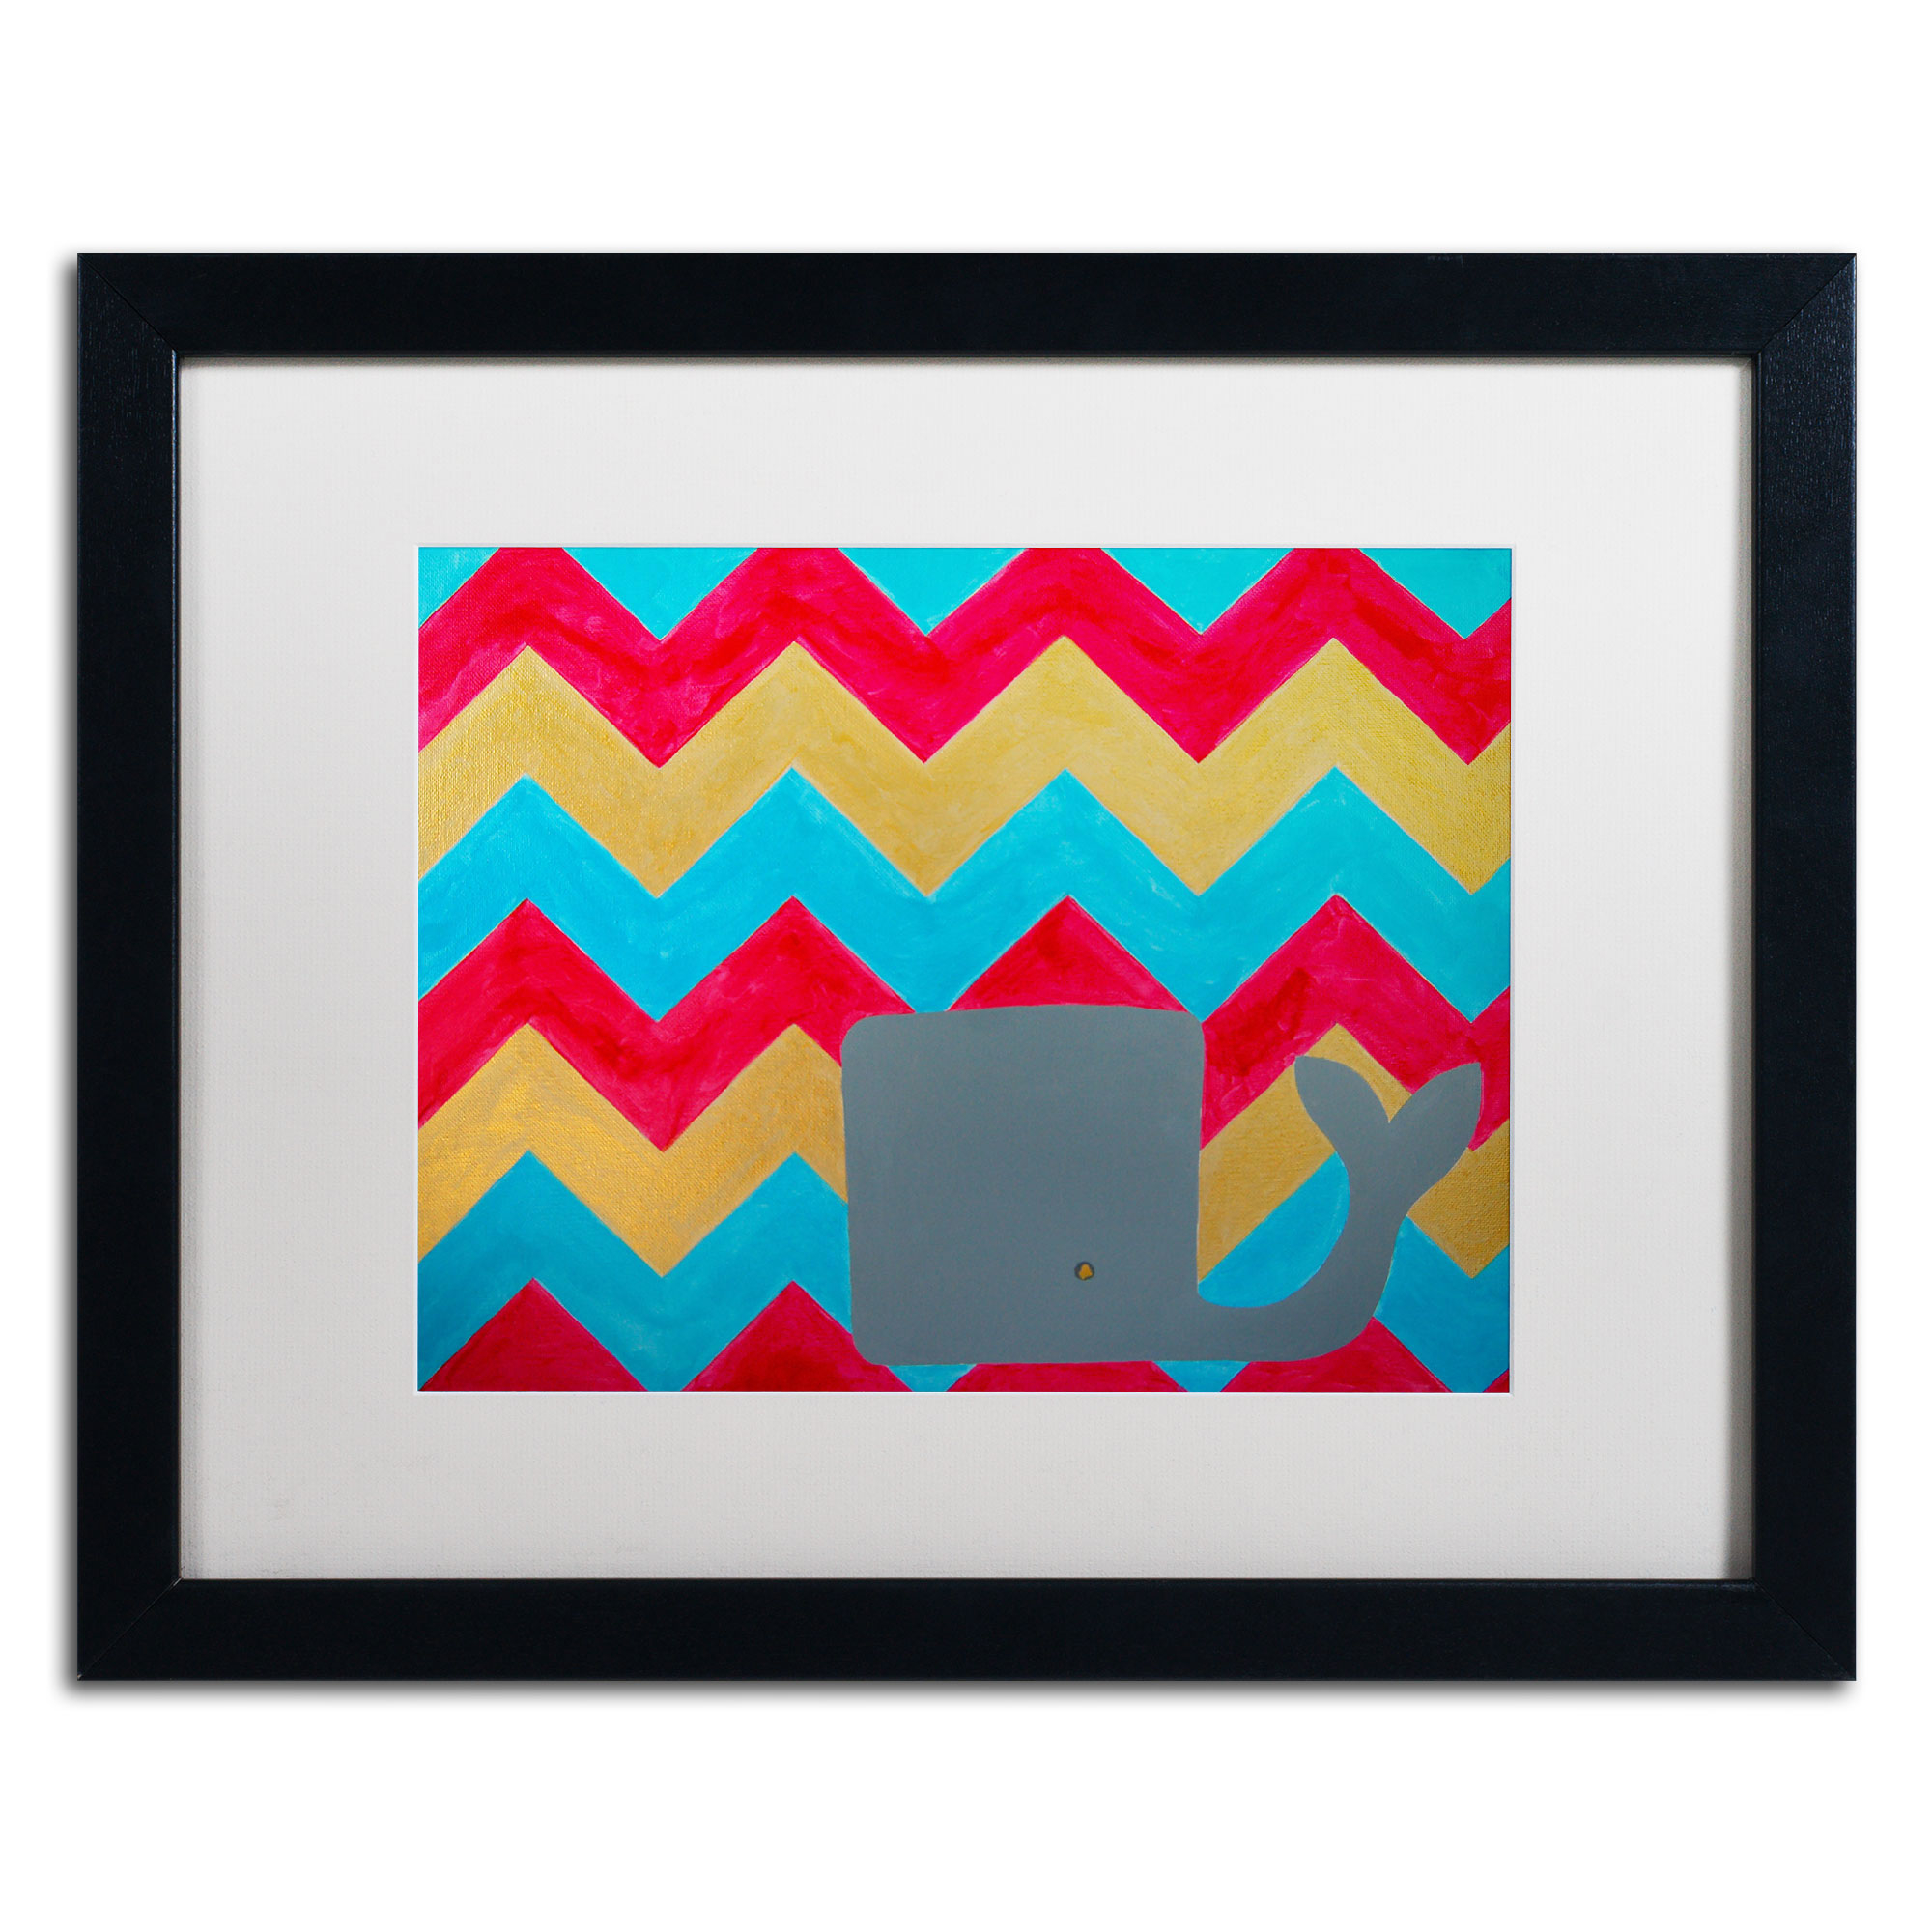 Nicole Dietz 'Pink and Gold Whale Chevron' Black Wooden Framed Art 18 x 22 Inches